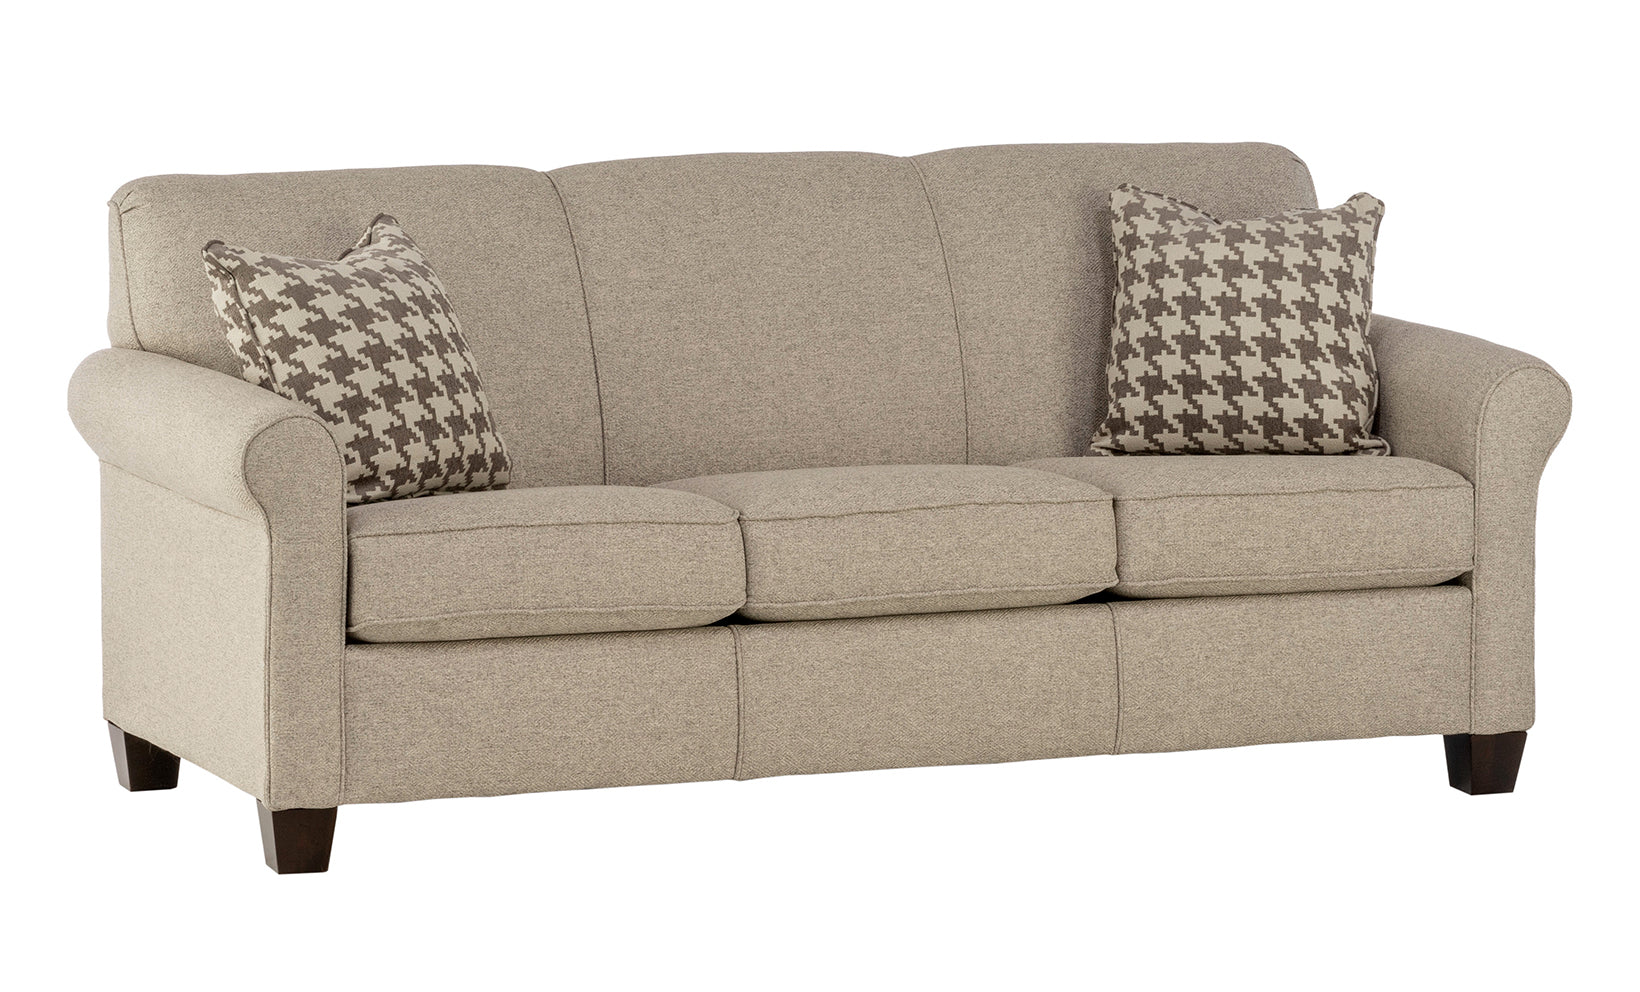 Swell Angie Queen Sleeper Sofa Pabps2019 Chair Design Images Pabps2019Com